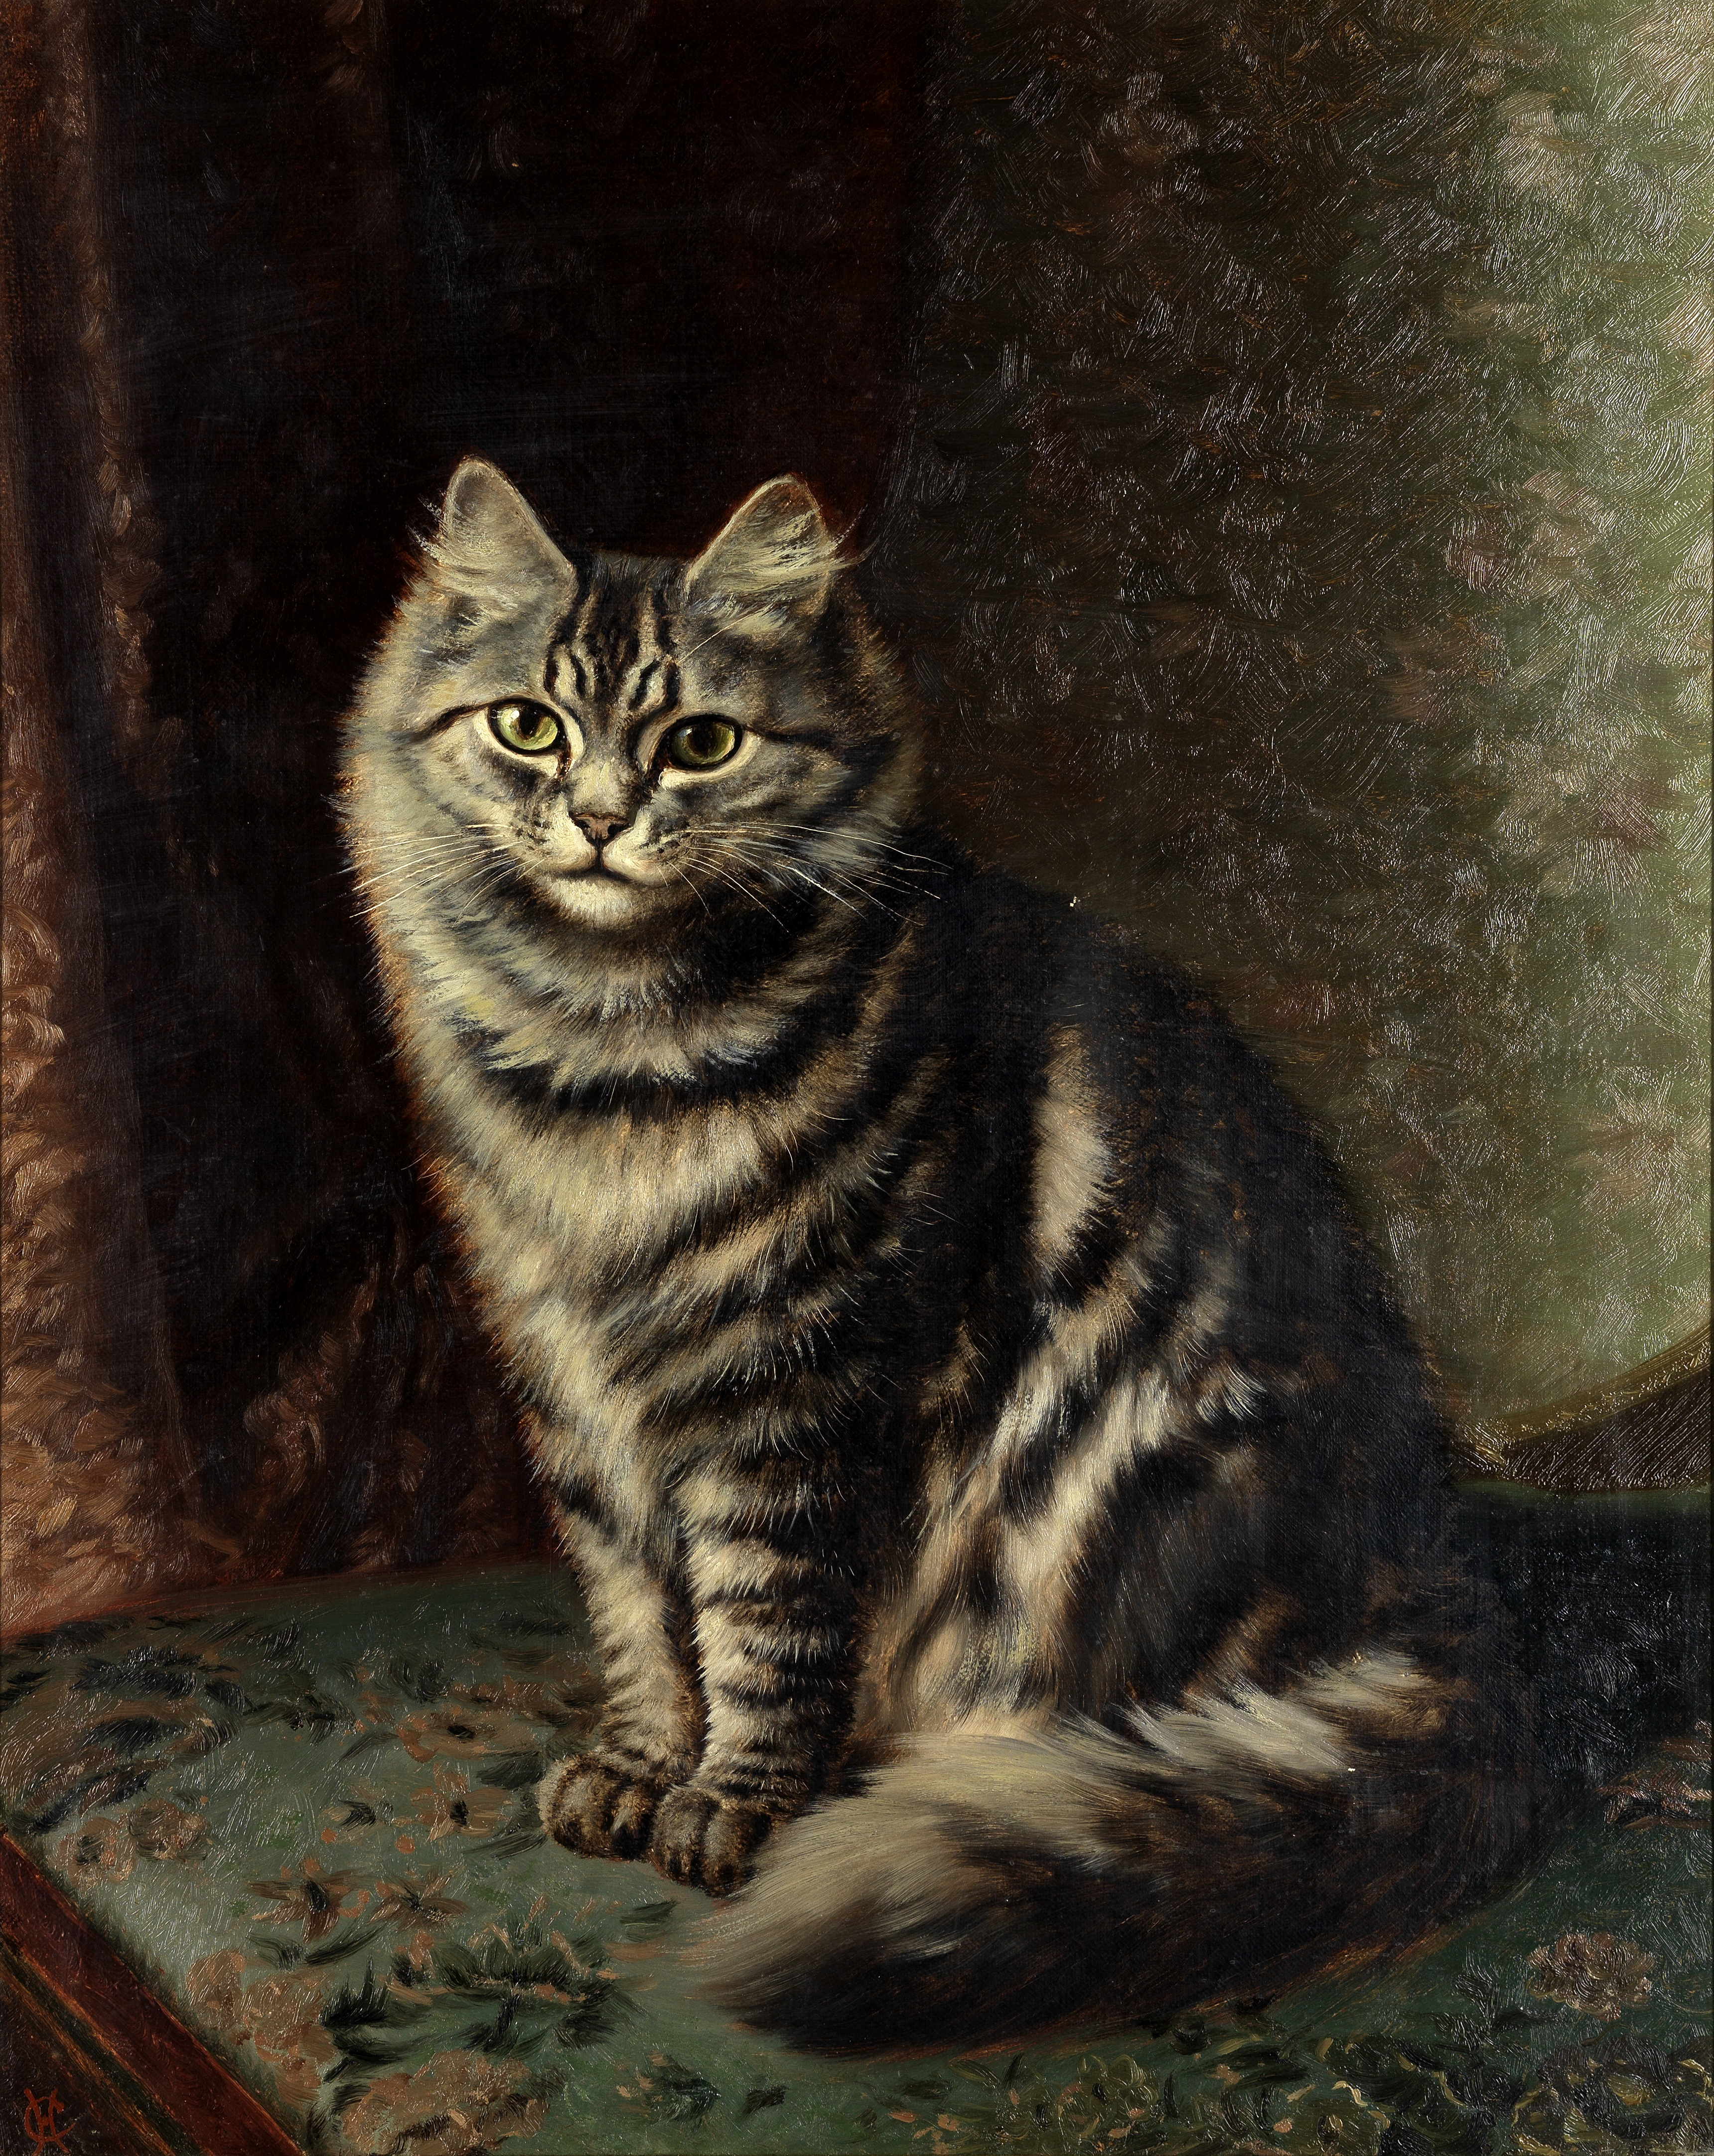 Horatio Henry Couldery (British, 1832-1893) A silver tabby on a chair